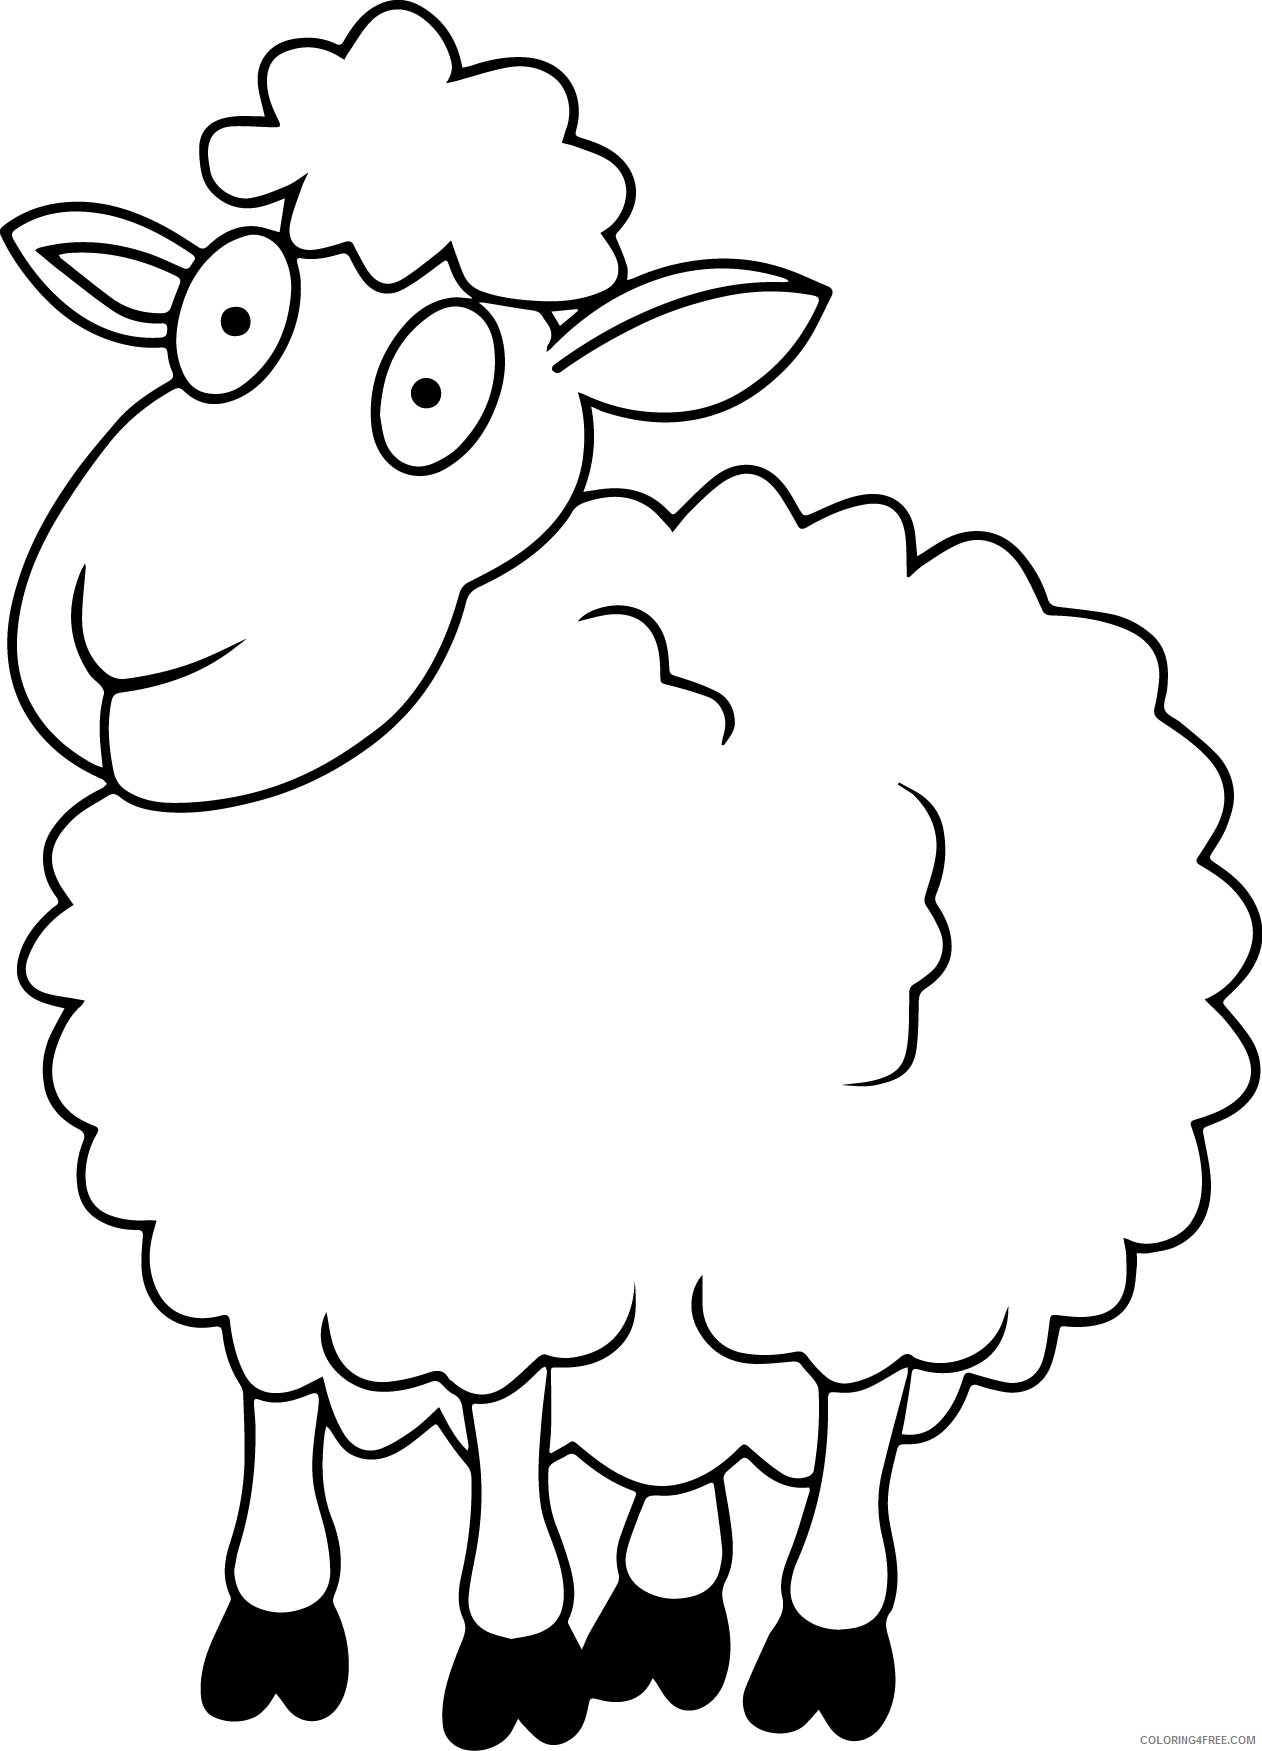 sheep coloring pages for kids Coloring4free